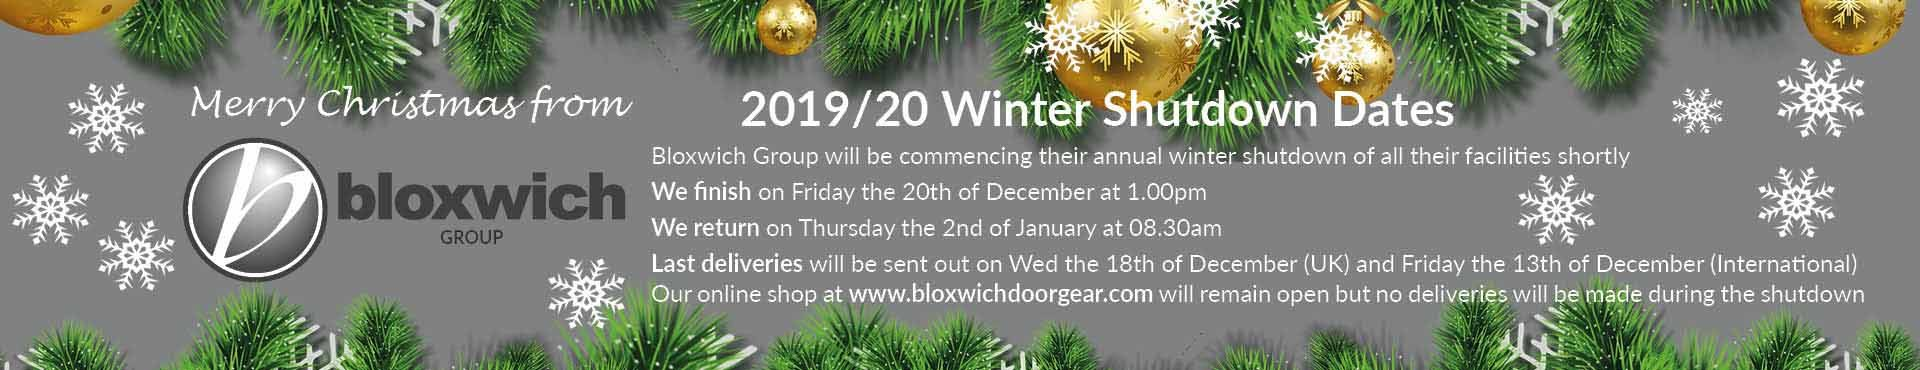 Website banner for the 2019/2020 bloxwich group winter shutdown dates